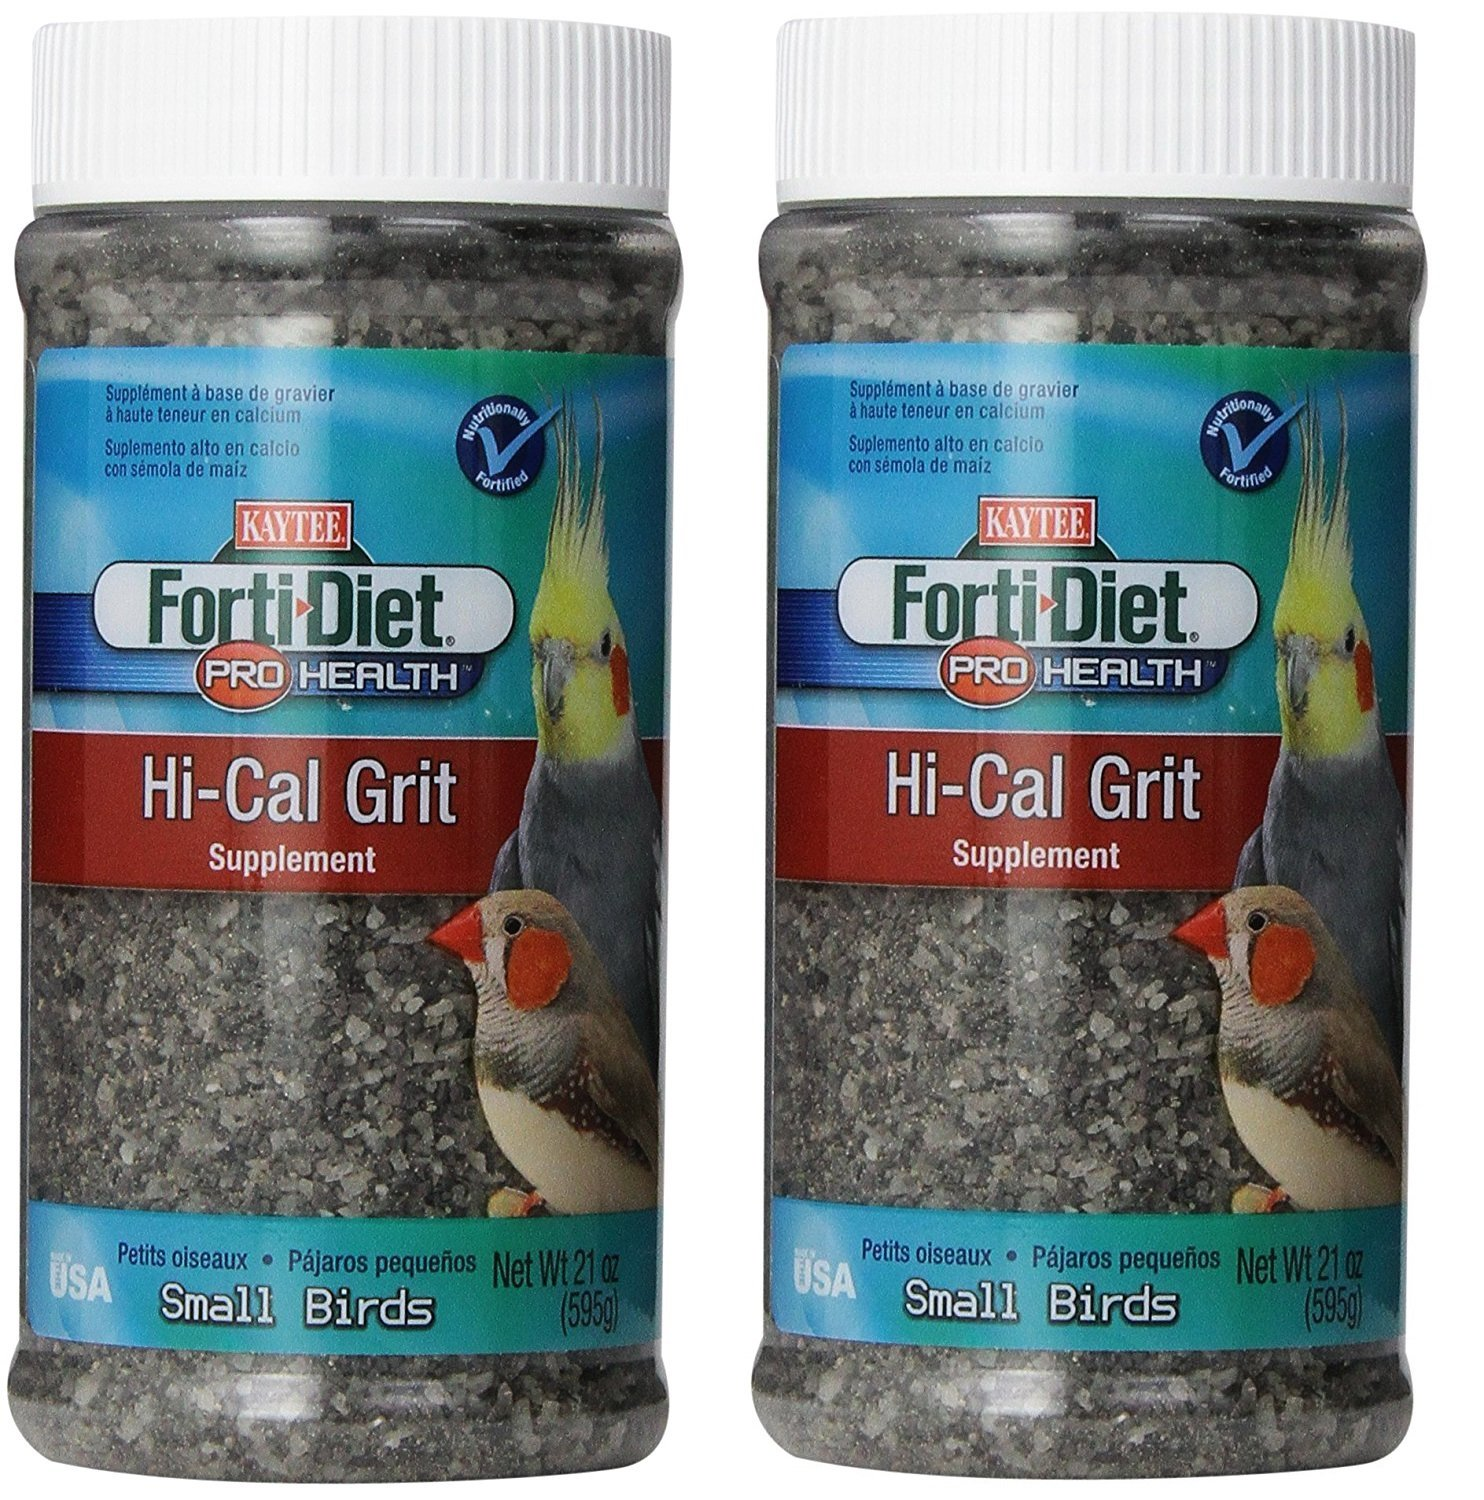 42oz Kaytee Forti-Diet Pro Health Hi-Calcium Grit for Small Birds, 21-oz jar (42oz)